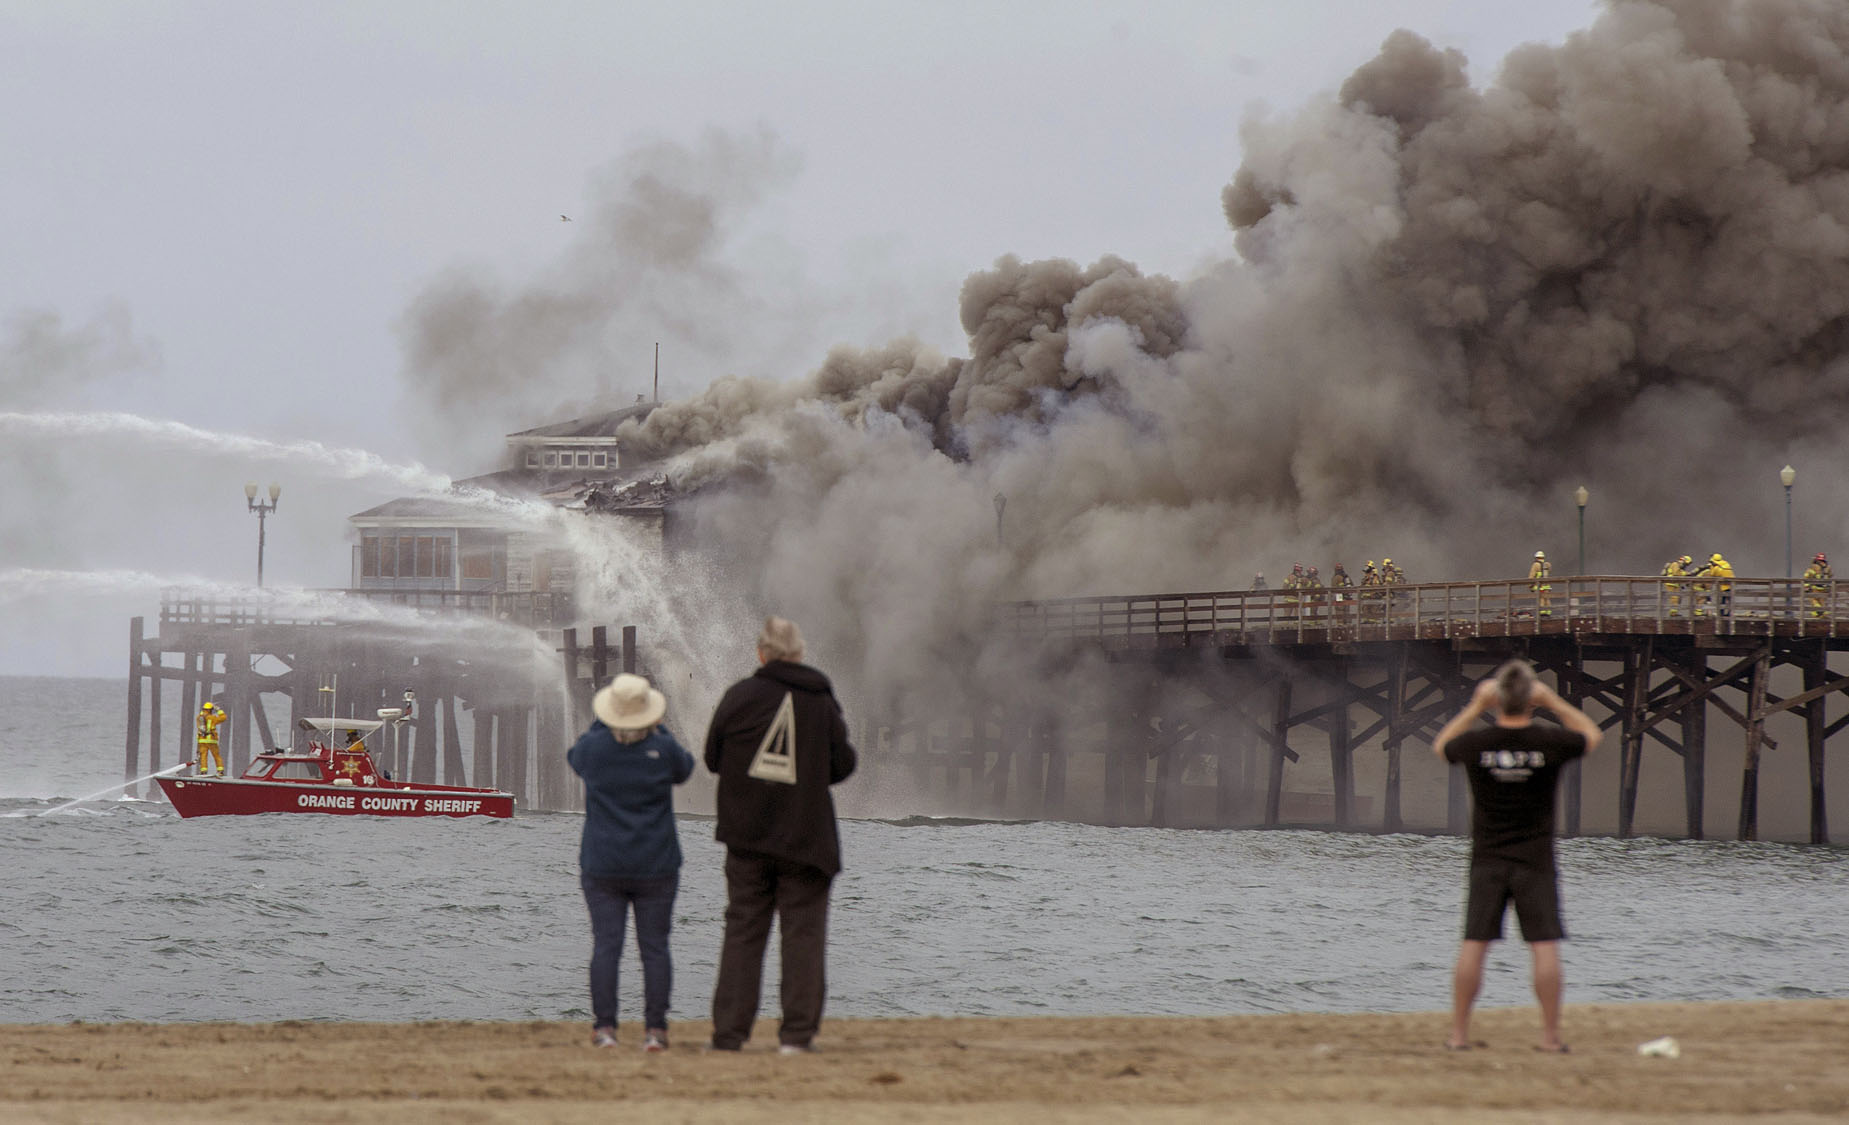 Fire engulfs abandoned restaurant on California pier